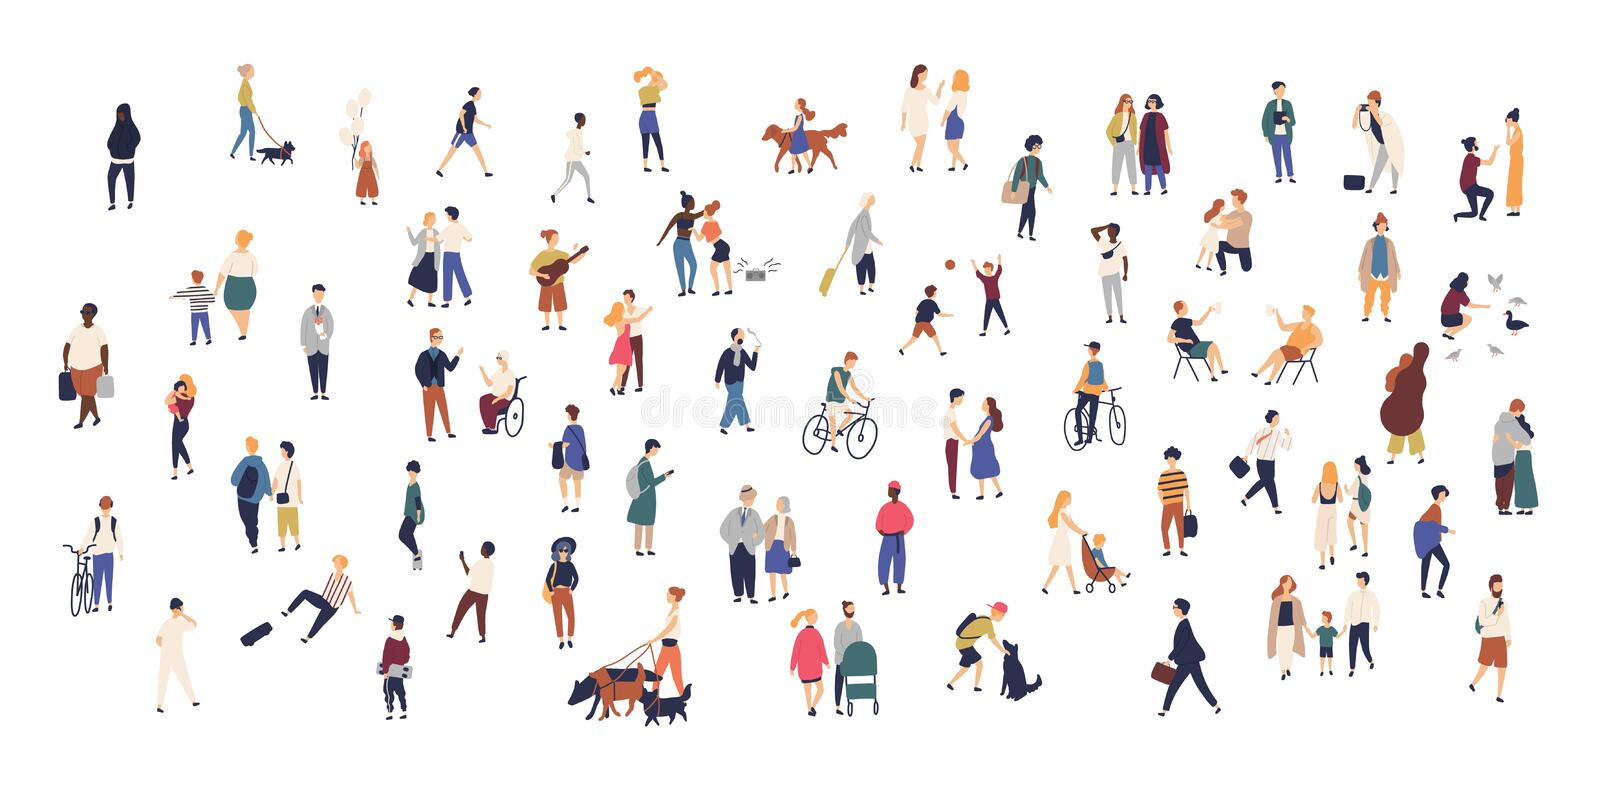 Crowd of tiny people walking with children or dogs, riding bicycles, standing, talking, running. Cartoon men and women vector illustration